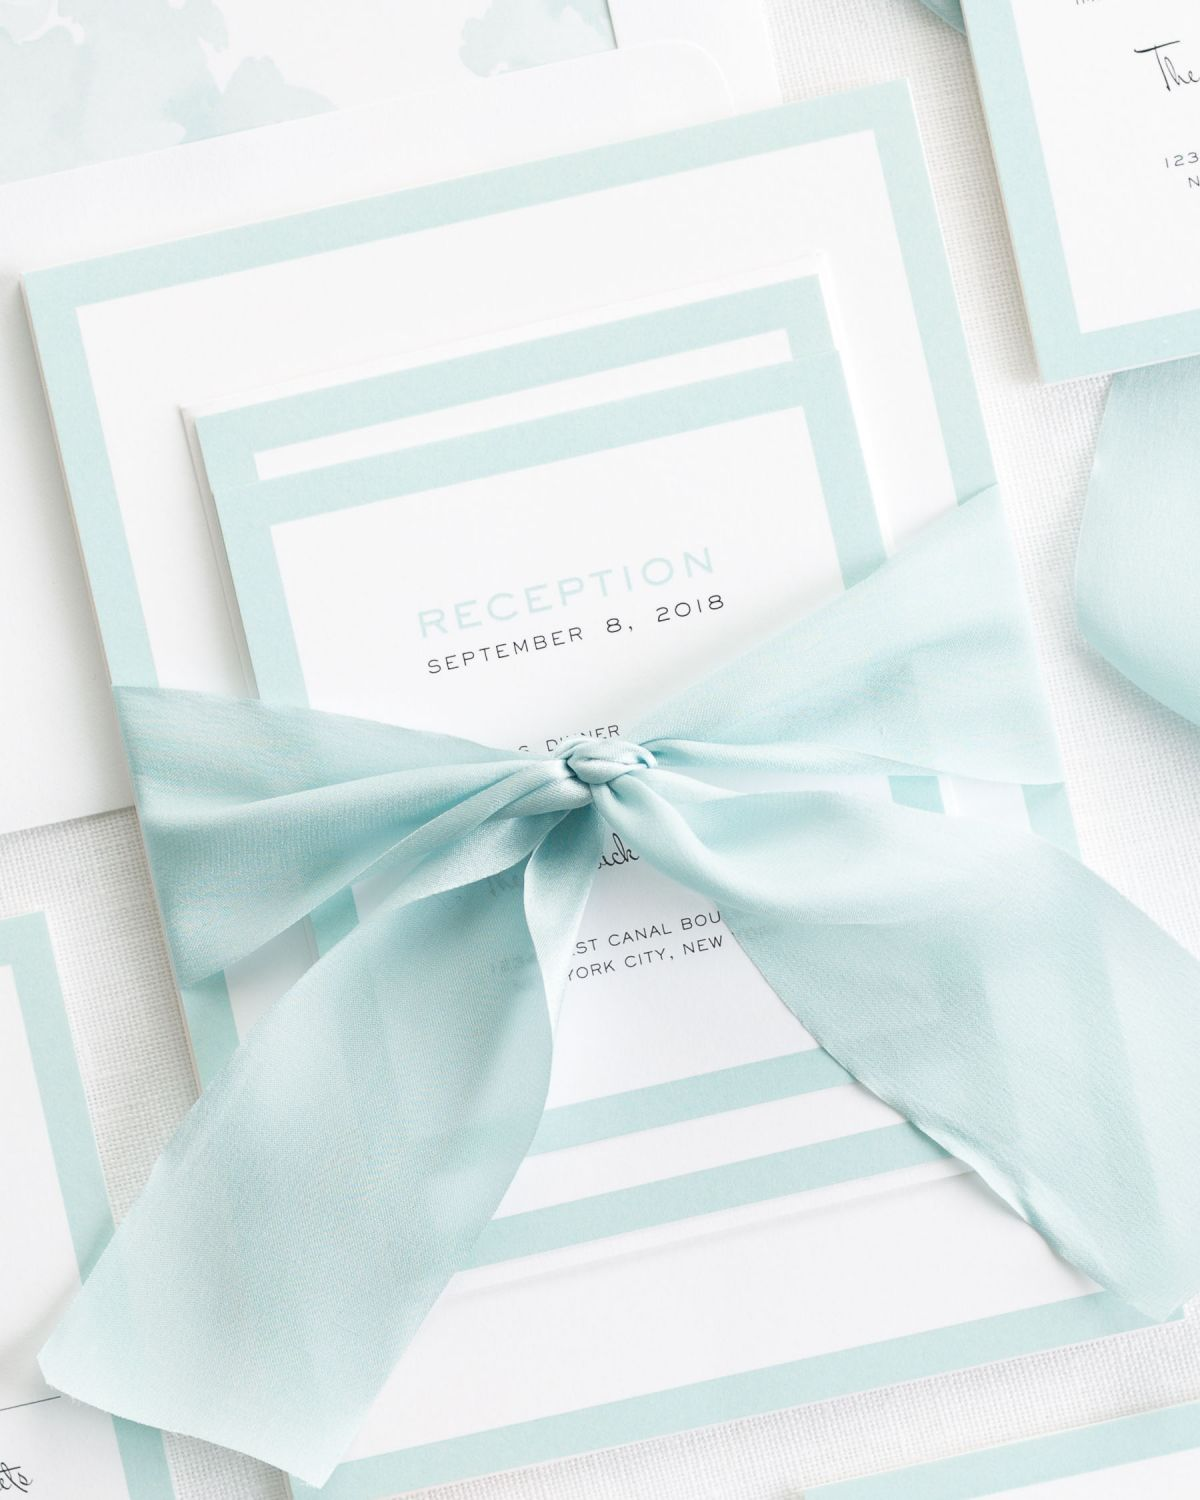 Complete Wedding Invitations Set with Mint Ribbon and Enclosures